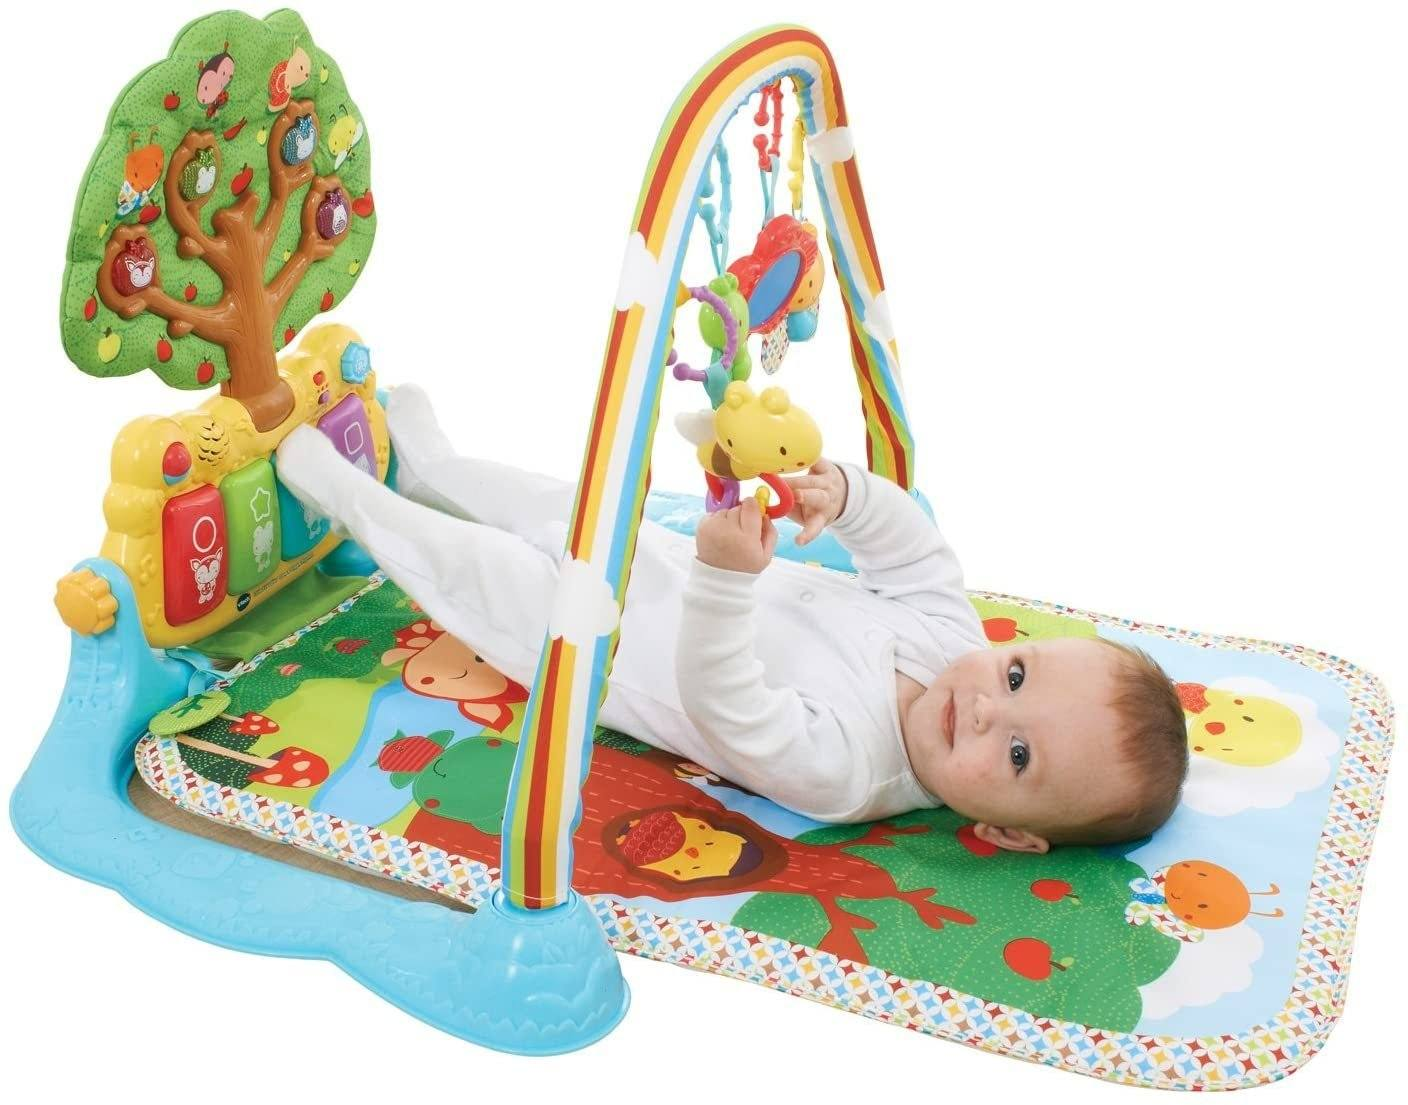 vtech-baby-little-friendlies-glow-and-giggle-playmat-baby-toys-vtech-491430